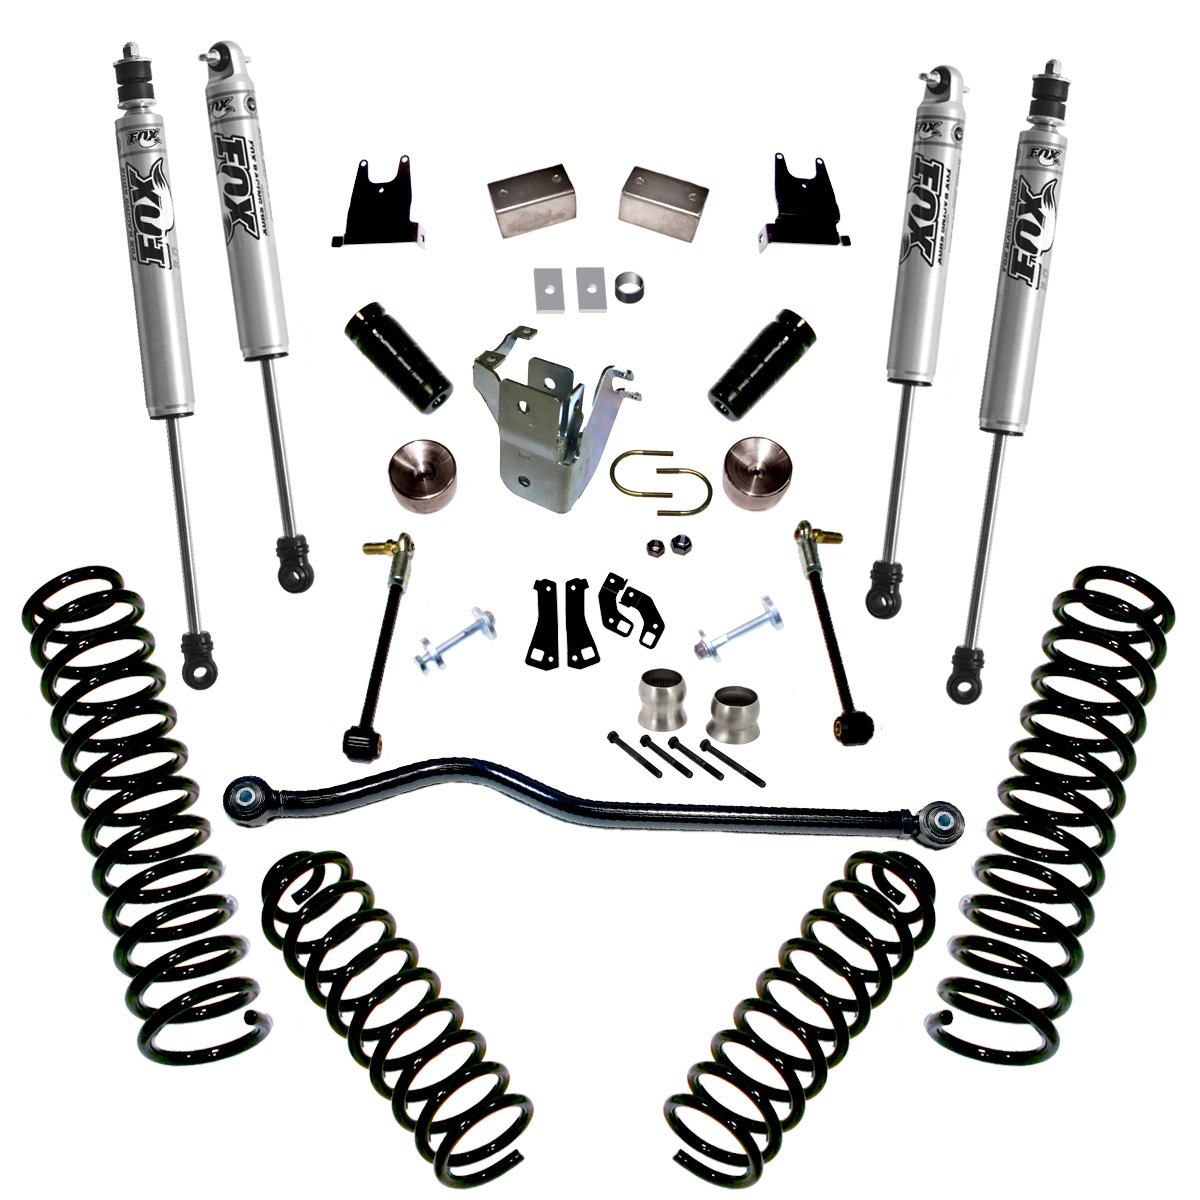 Superlift 4 Lift Kit With Fox Shocks For Jeep